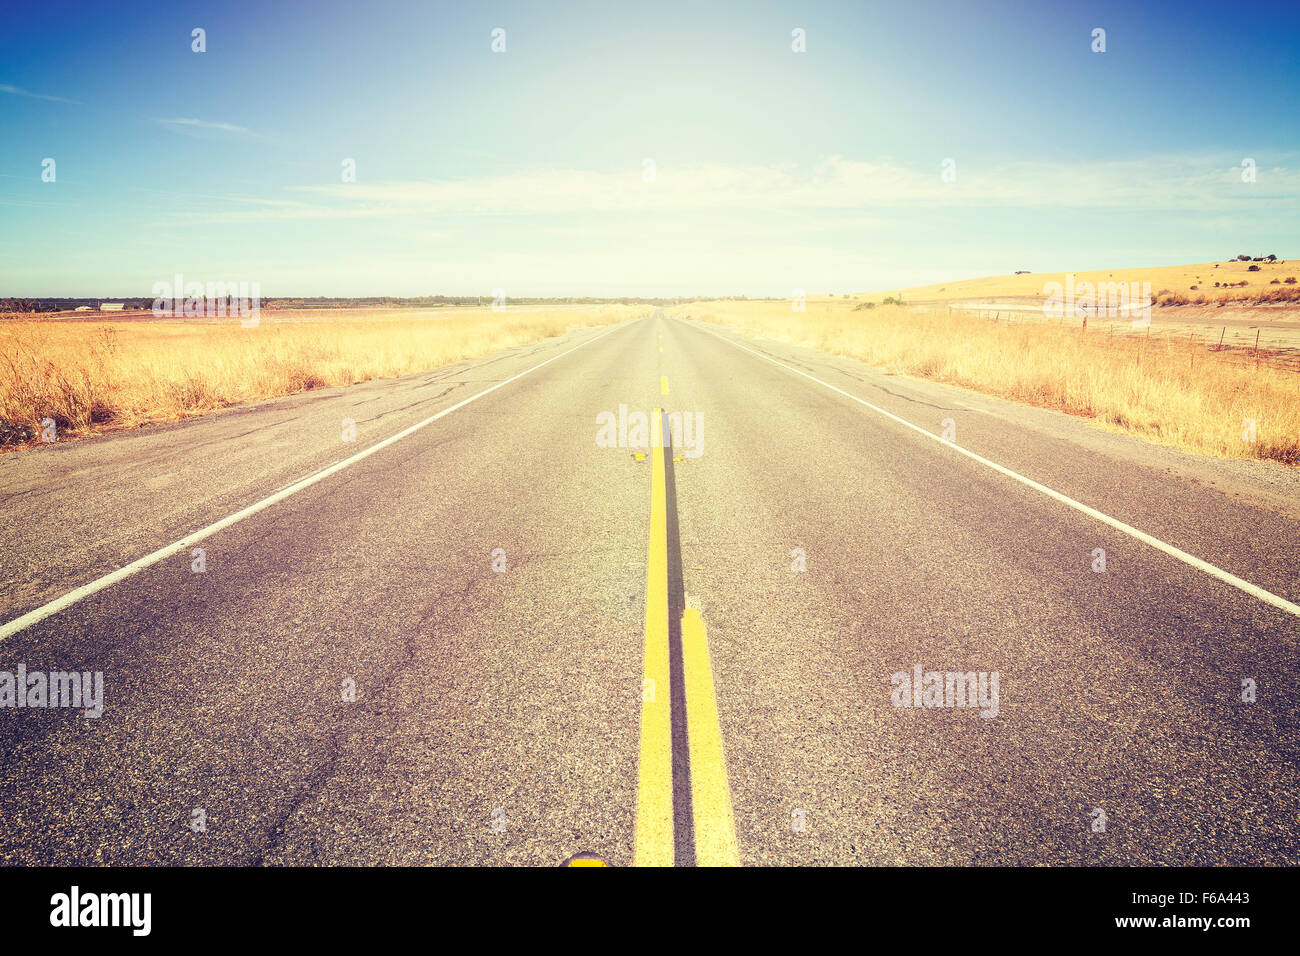 Vintage toned endless country road, travel concept picture. - Stock Image